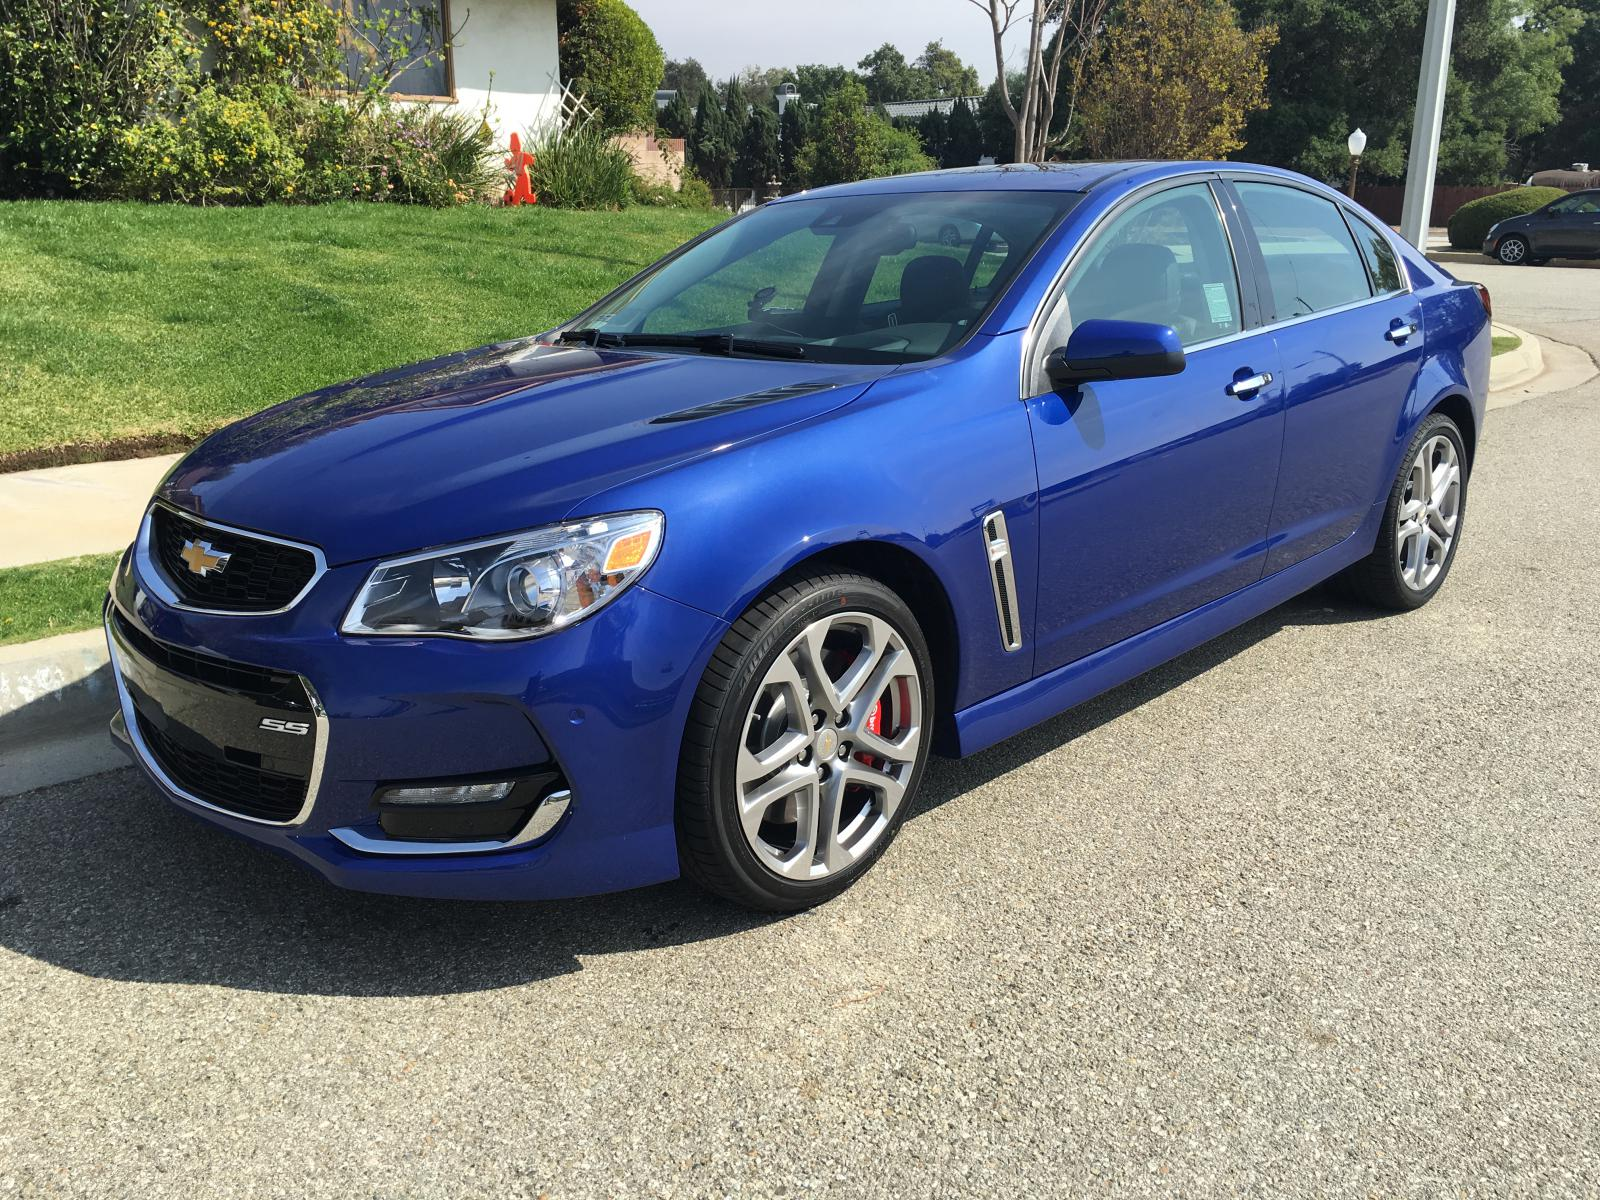 Slipstream Blue Metallic Chevrolet SS Picture Thread - Page 3 ...